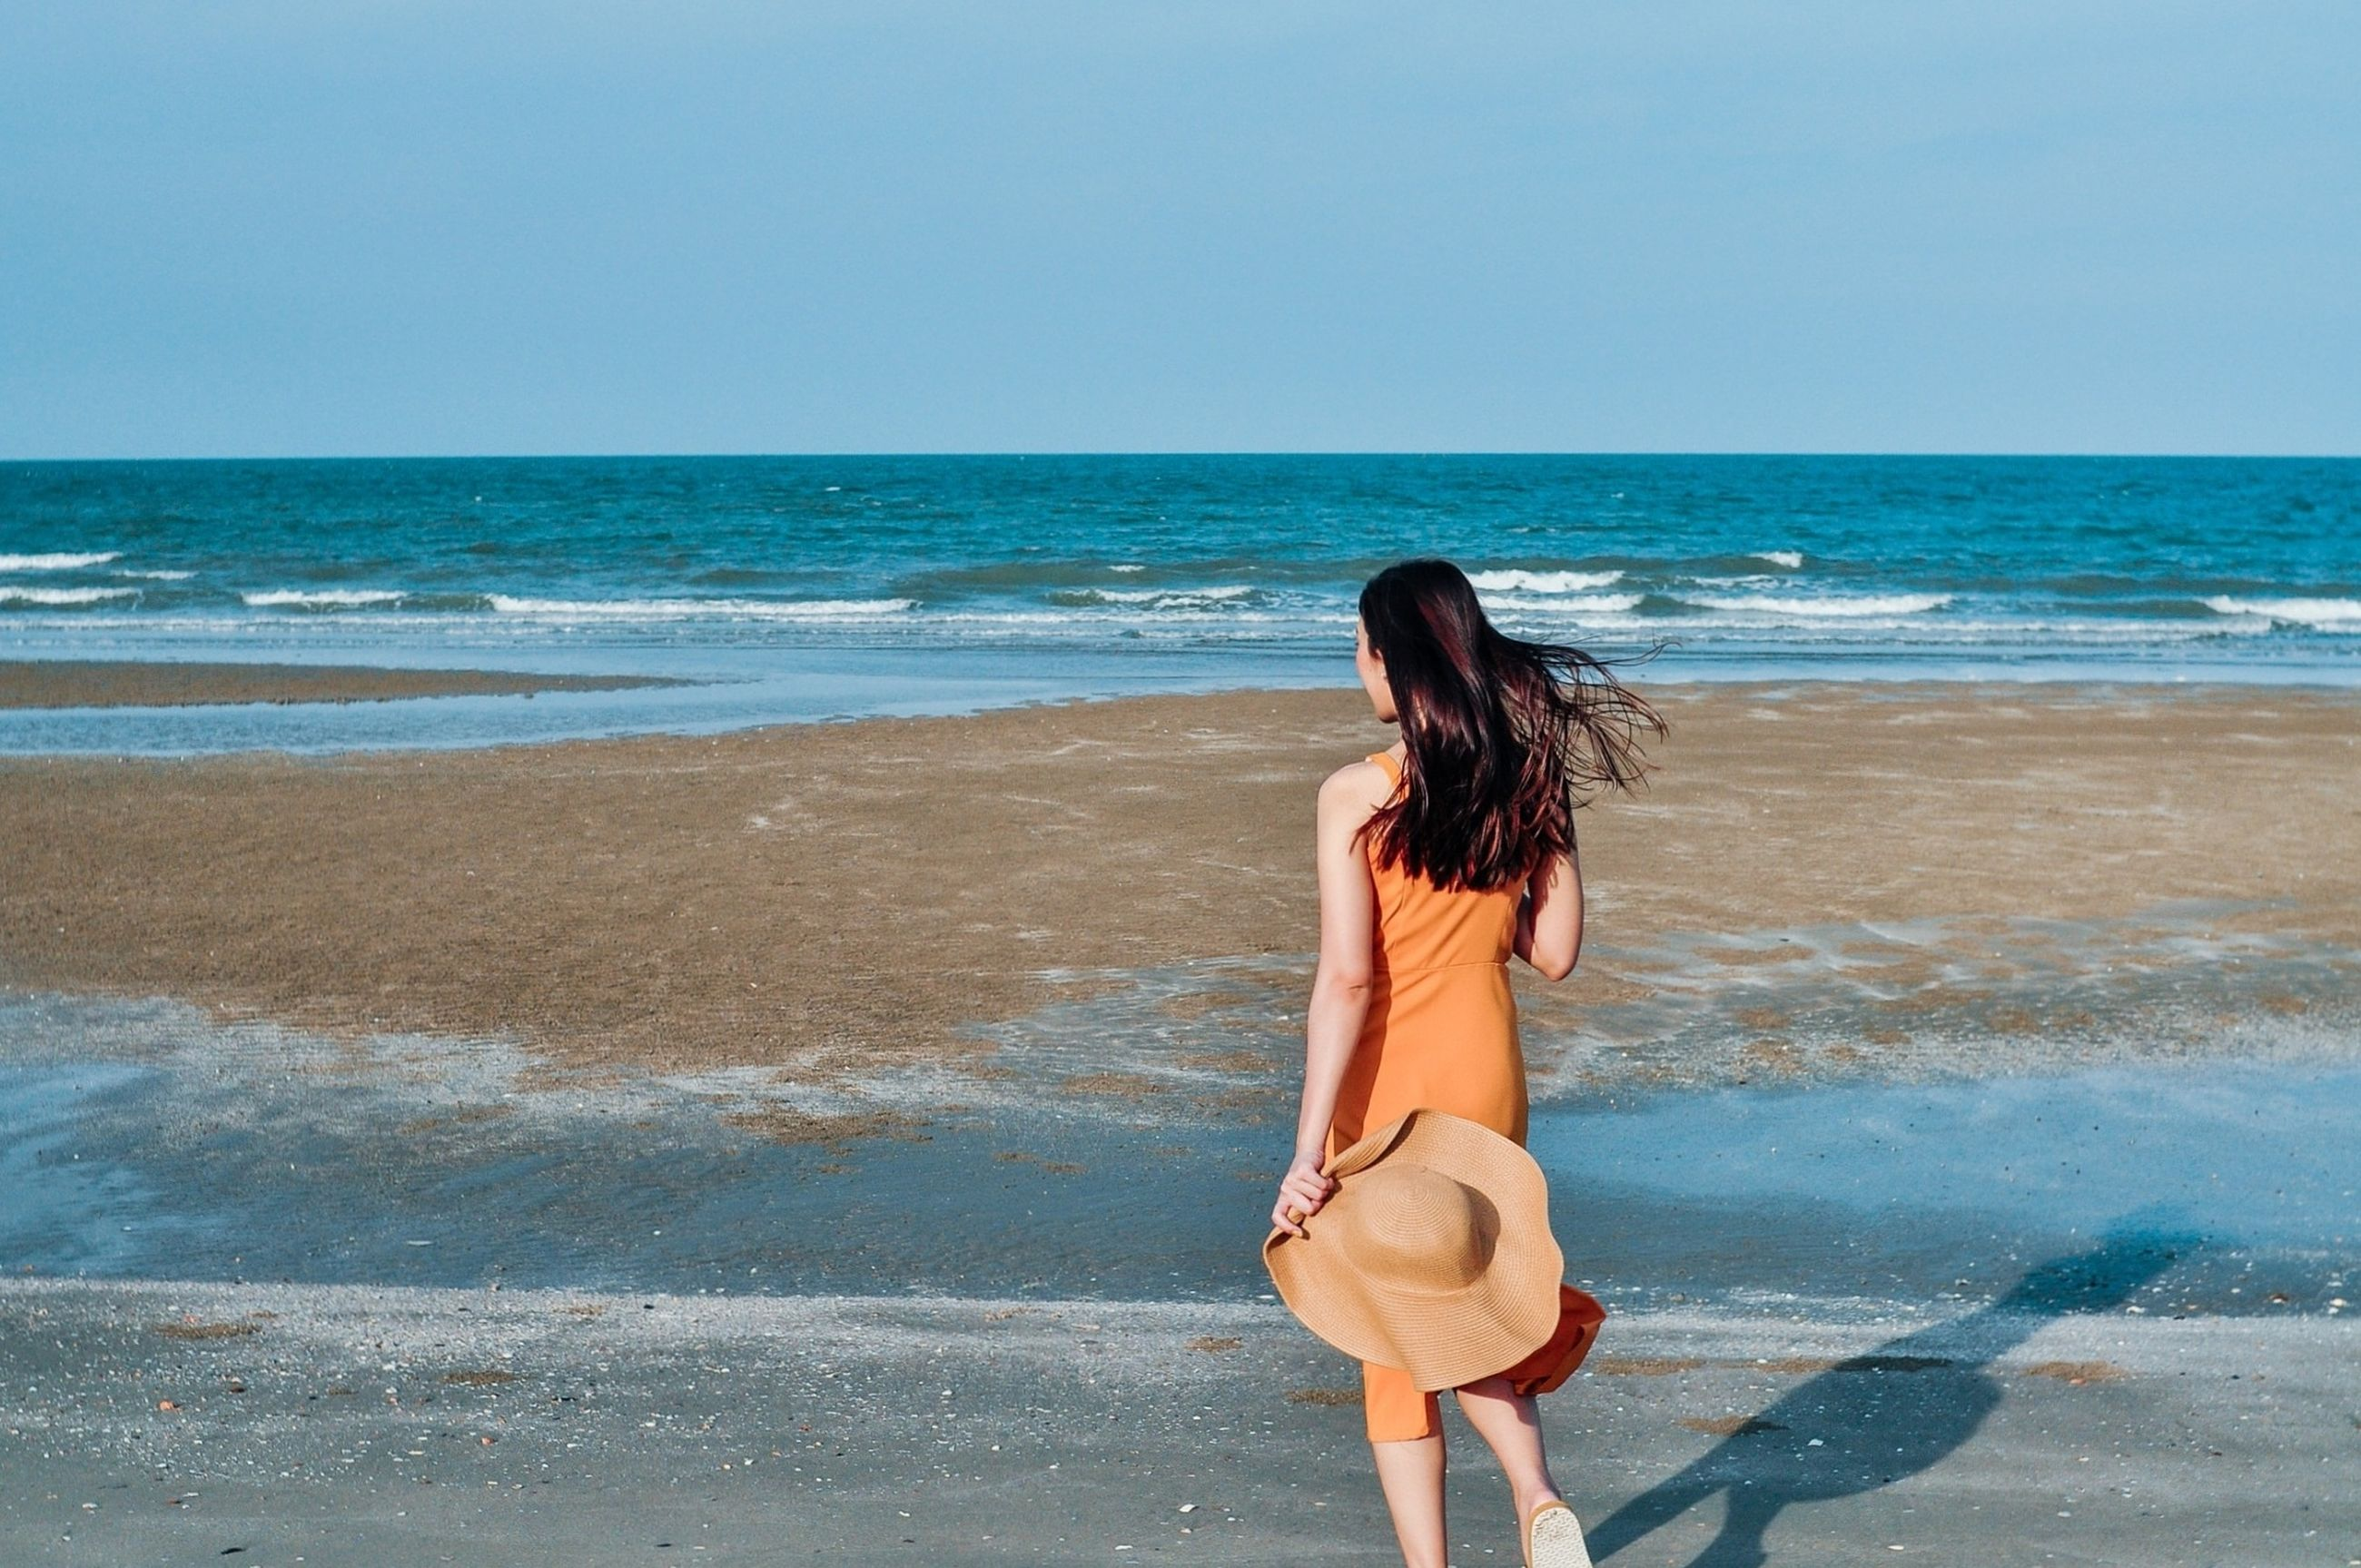 sea, water, beach, land, one person, vacation, horizon over water, sky, ocean, horizon, women, shore, nature, long hair, adult, hairstyle, full length, body of water, rear view, wave, beauty in nature, leisure activity, young adult, holiday, clothing, blue, sand, trip, coast, day, standing, lifestyles, walking, motion, scenics - nature, fashion, casual clothing, tranquility, sunlight, person, sunny, outdoors, clear sky, summer, tranquil scene, relaxation, solitude, travel, brown hair, dress, idyllic, female, copy space, human leg, travel destinations, looking